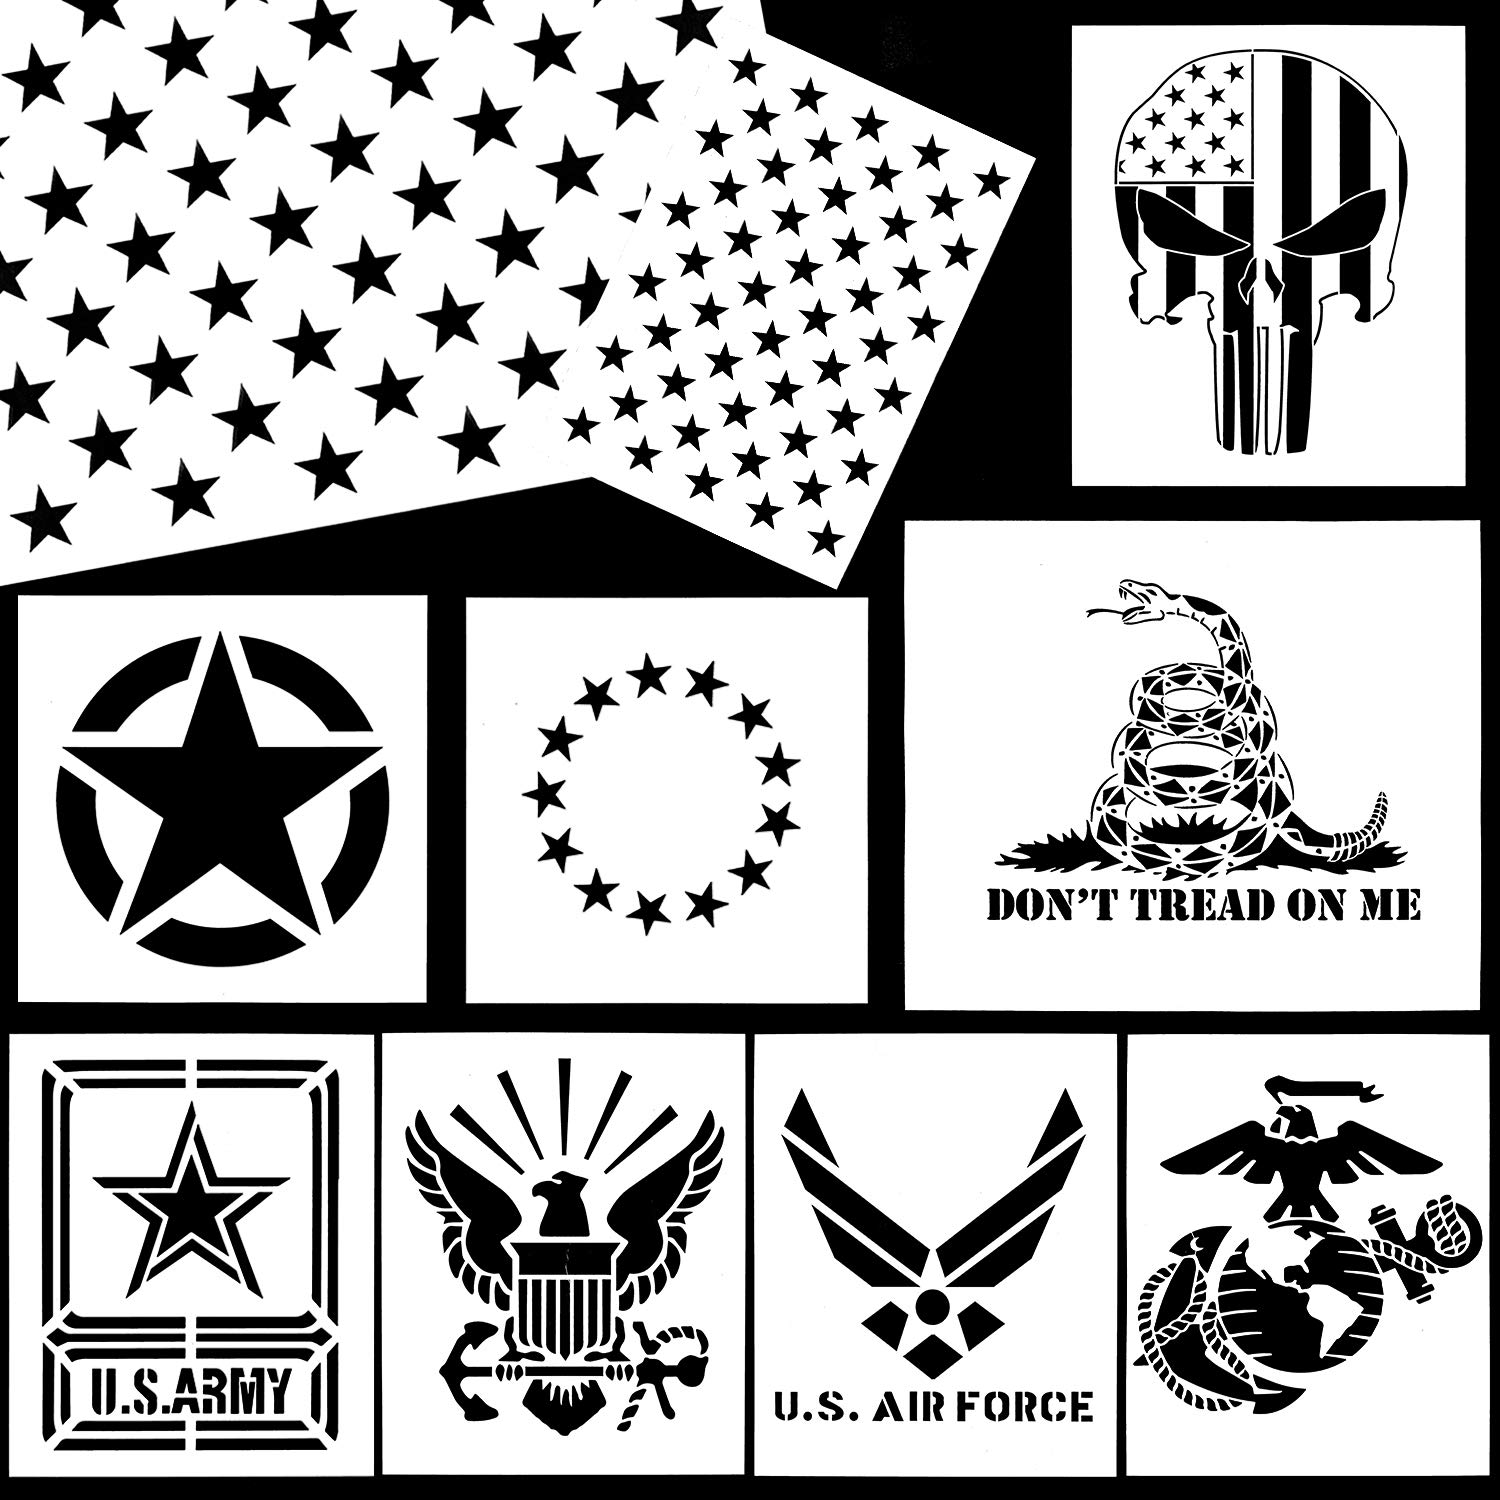 Whaline American Flag Stencil Military Series Template Marine Corps, Army, Air Force for Painting on Wood, Fabric, Paper, Airbrush, Walls Art (10 Pack) by Whaline